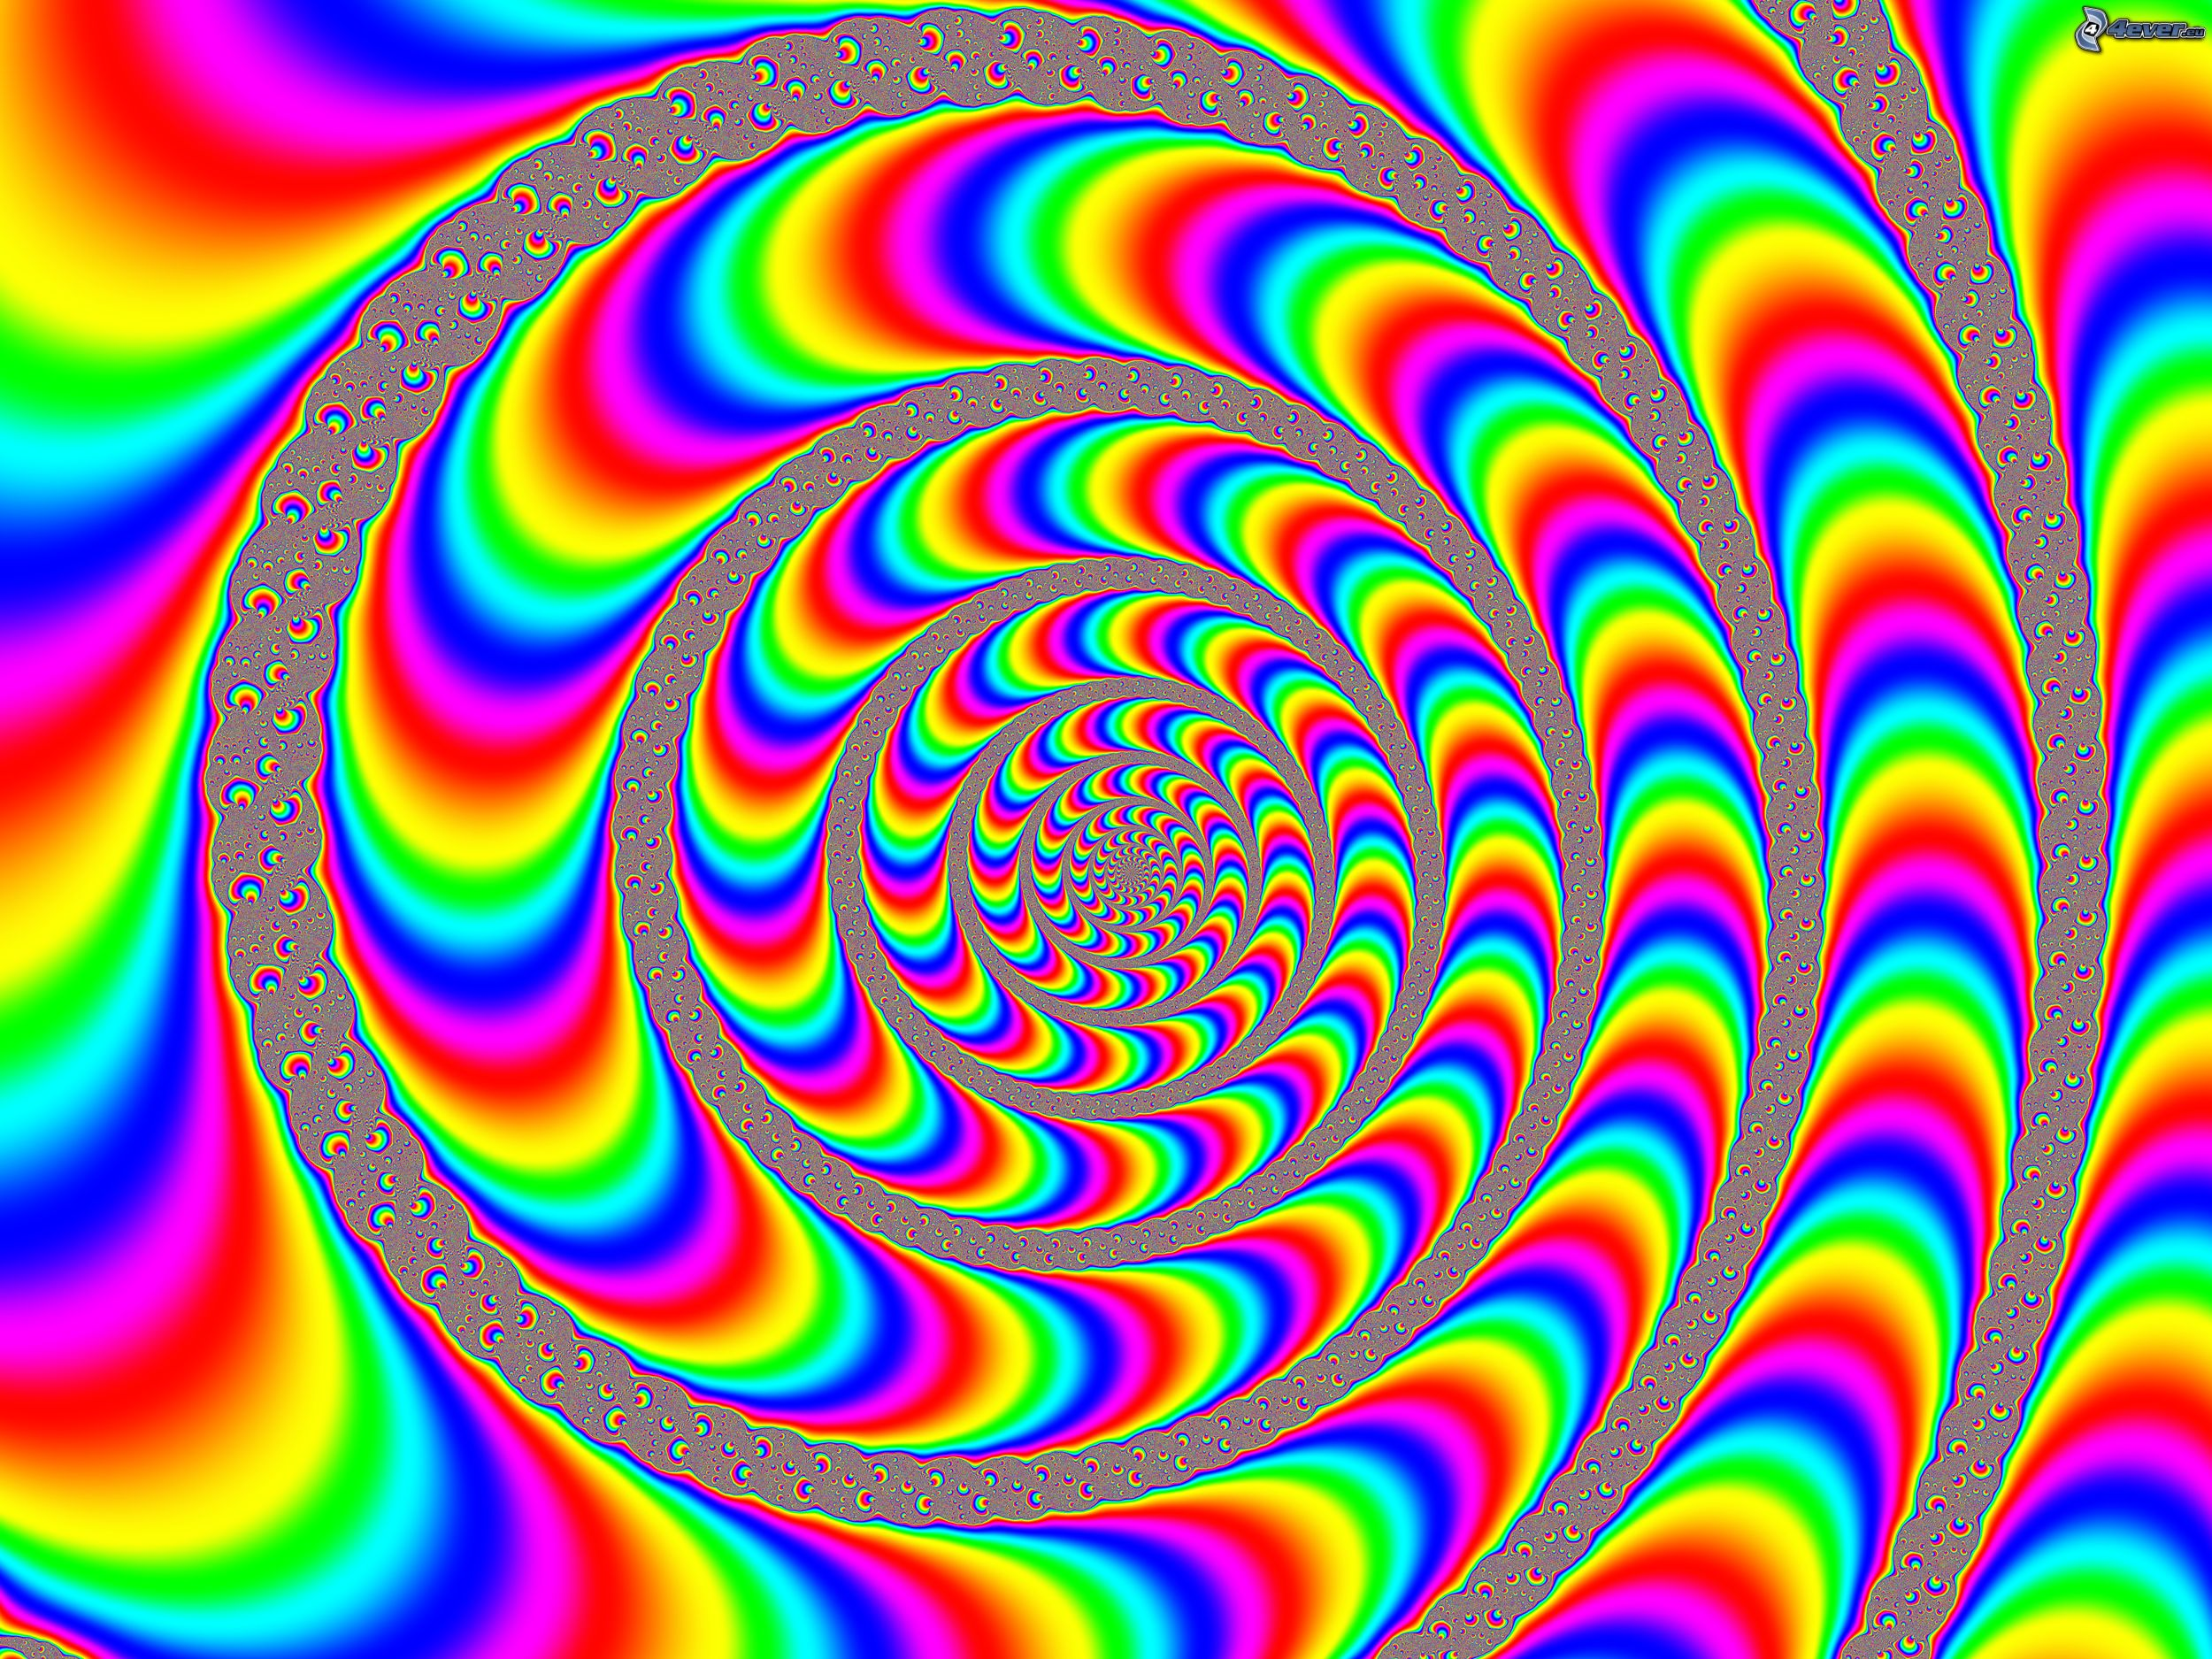 -pictures.4ever.eu- optical illusion, spiral 158747